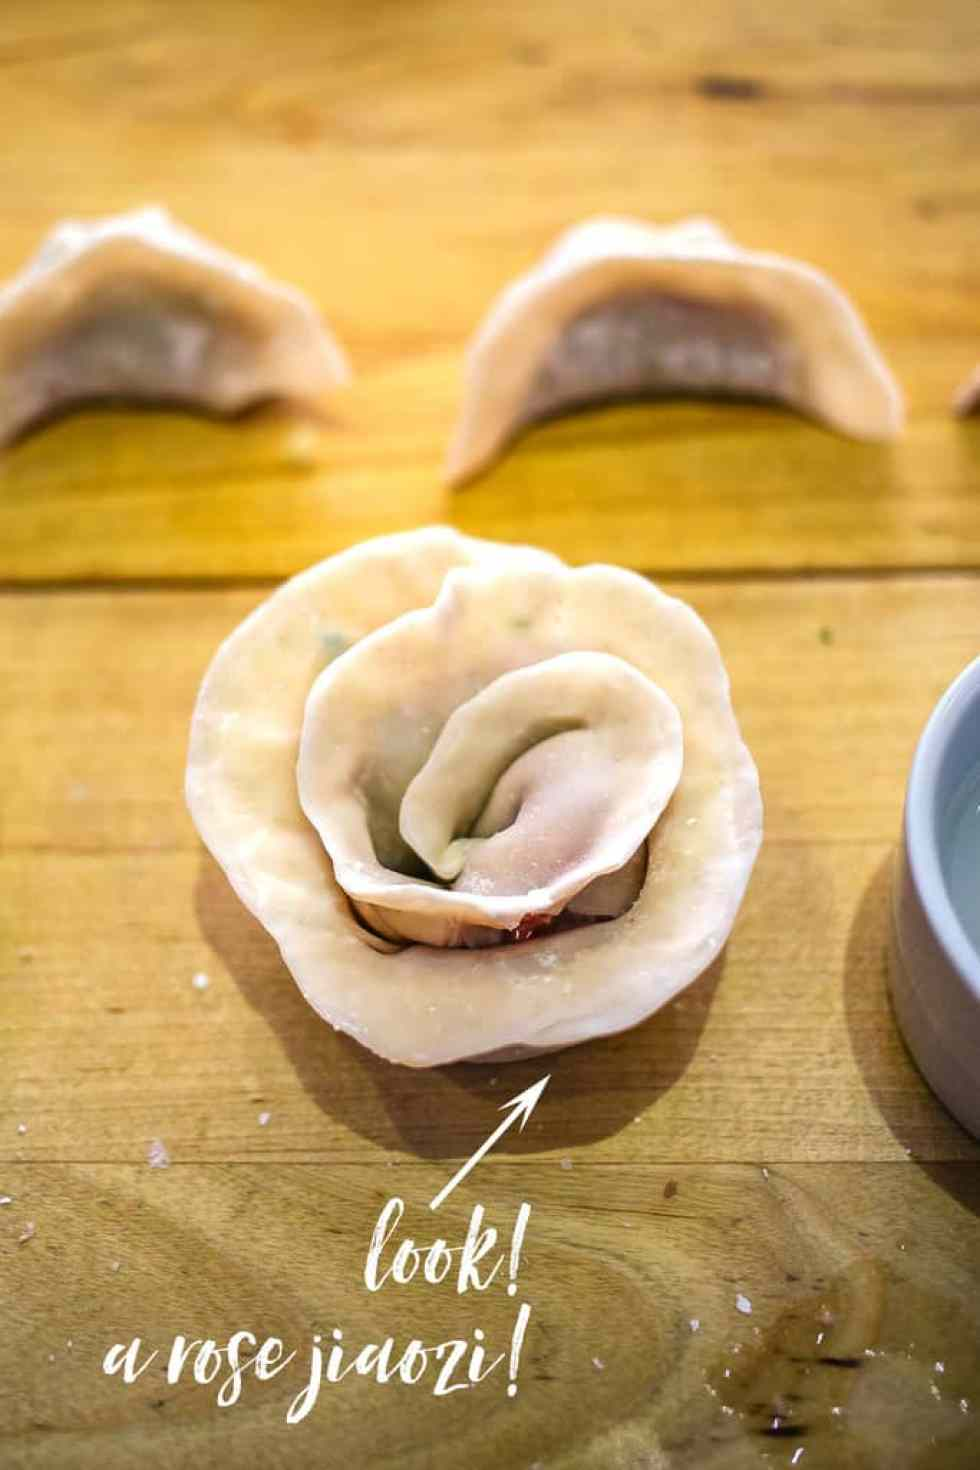 Learn how to make dim sum, including this impressive rose jiaozi (dumpling)! Details and a how-to video on the blog!